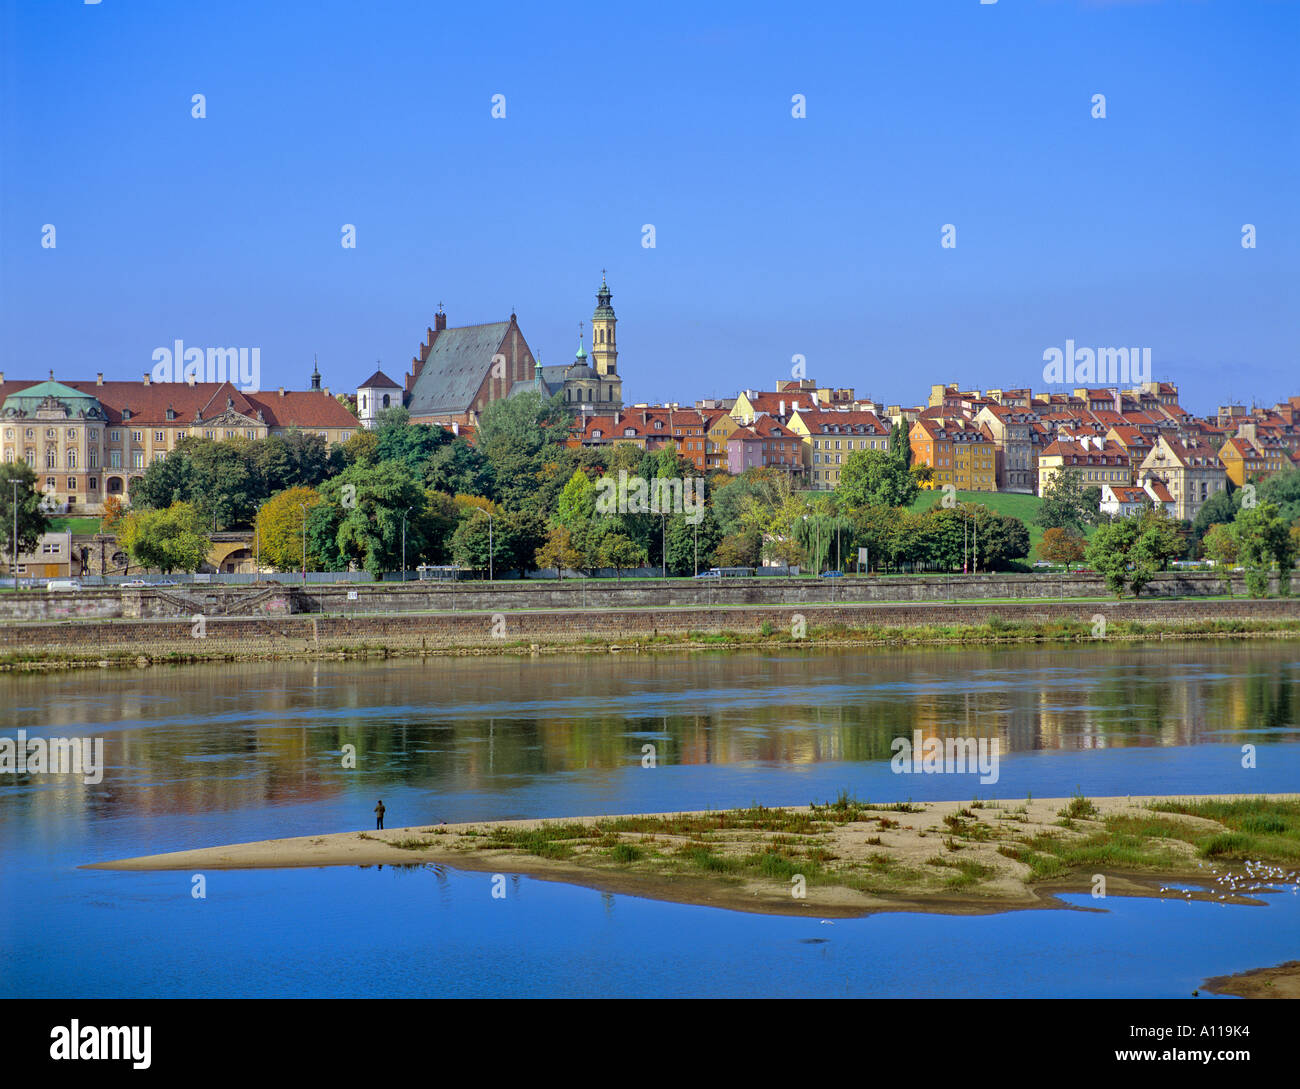 The View Of Old Town Across The Vistula River Warsaw Poland Stock - Where is warsaw